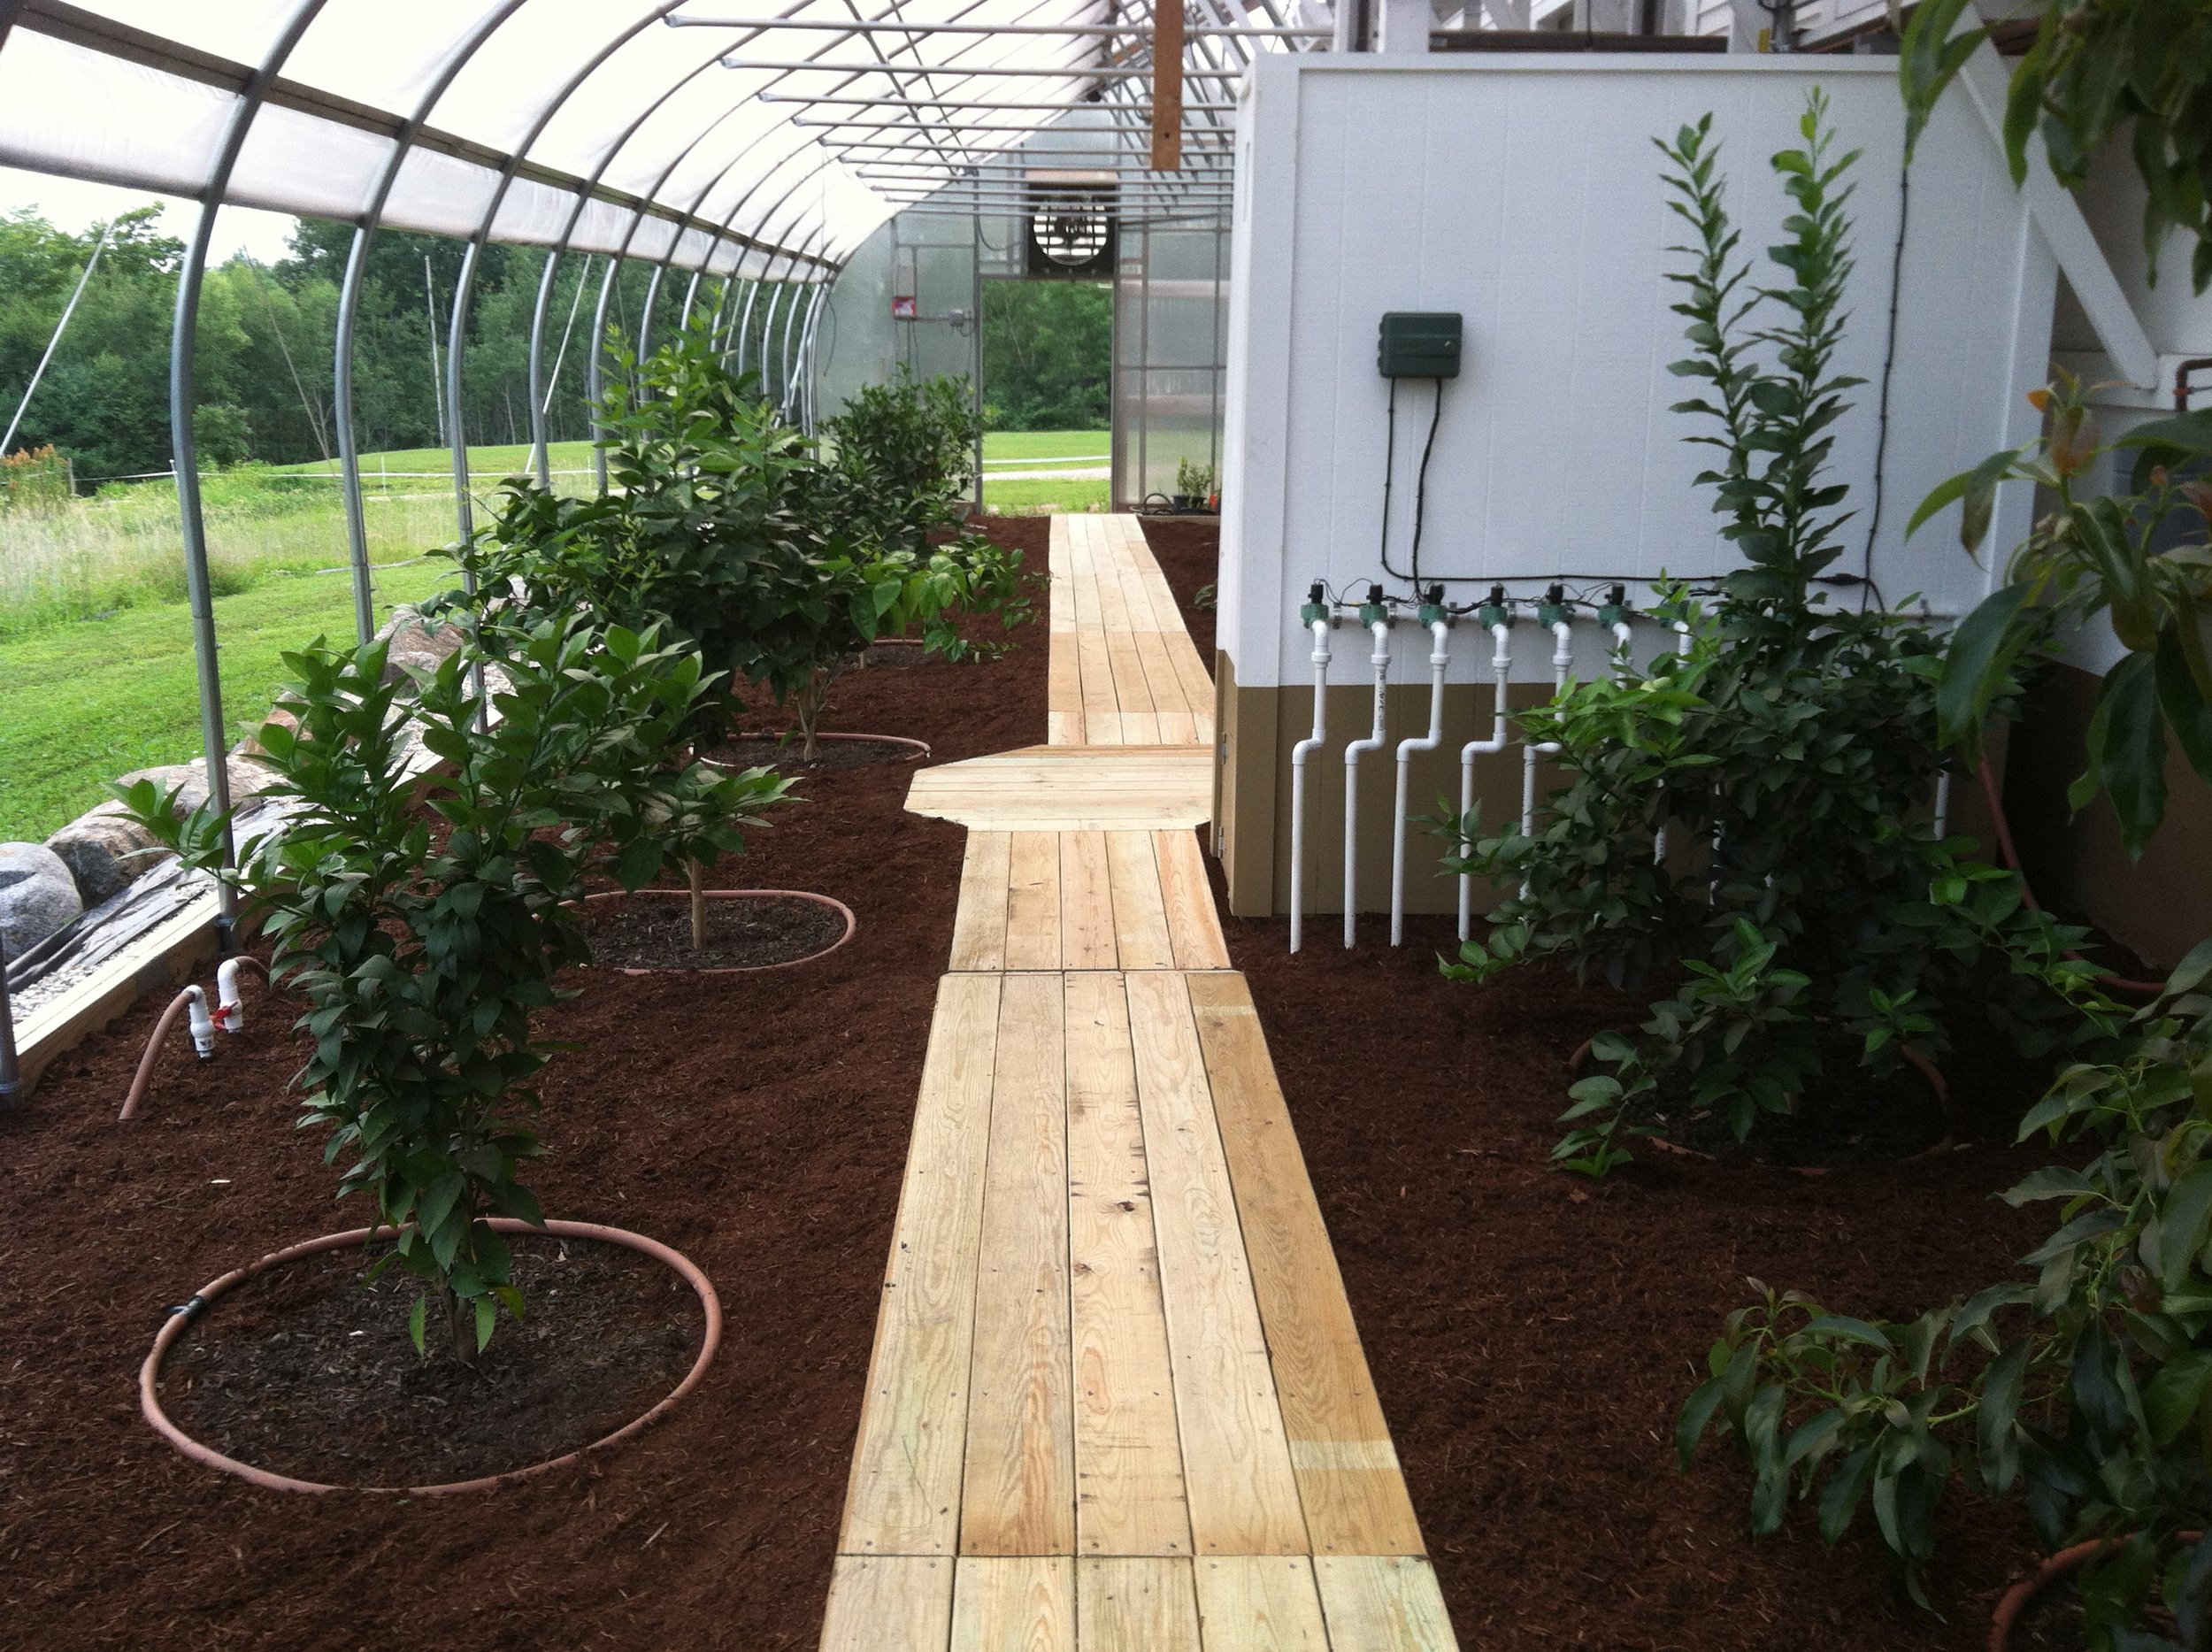 Greenhouse boardwalk and automated irrigation zone system.